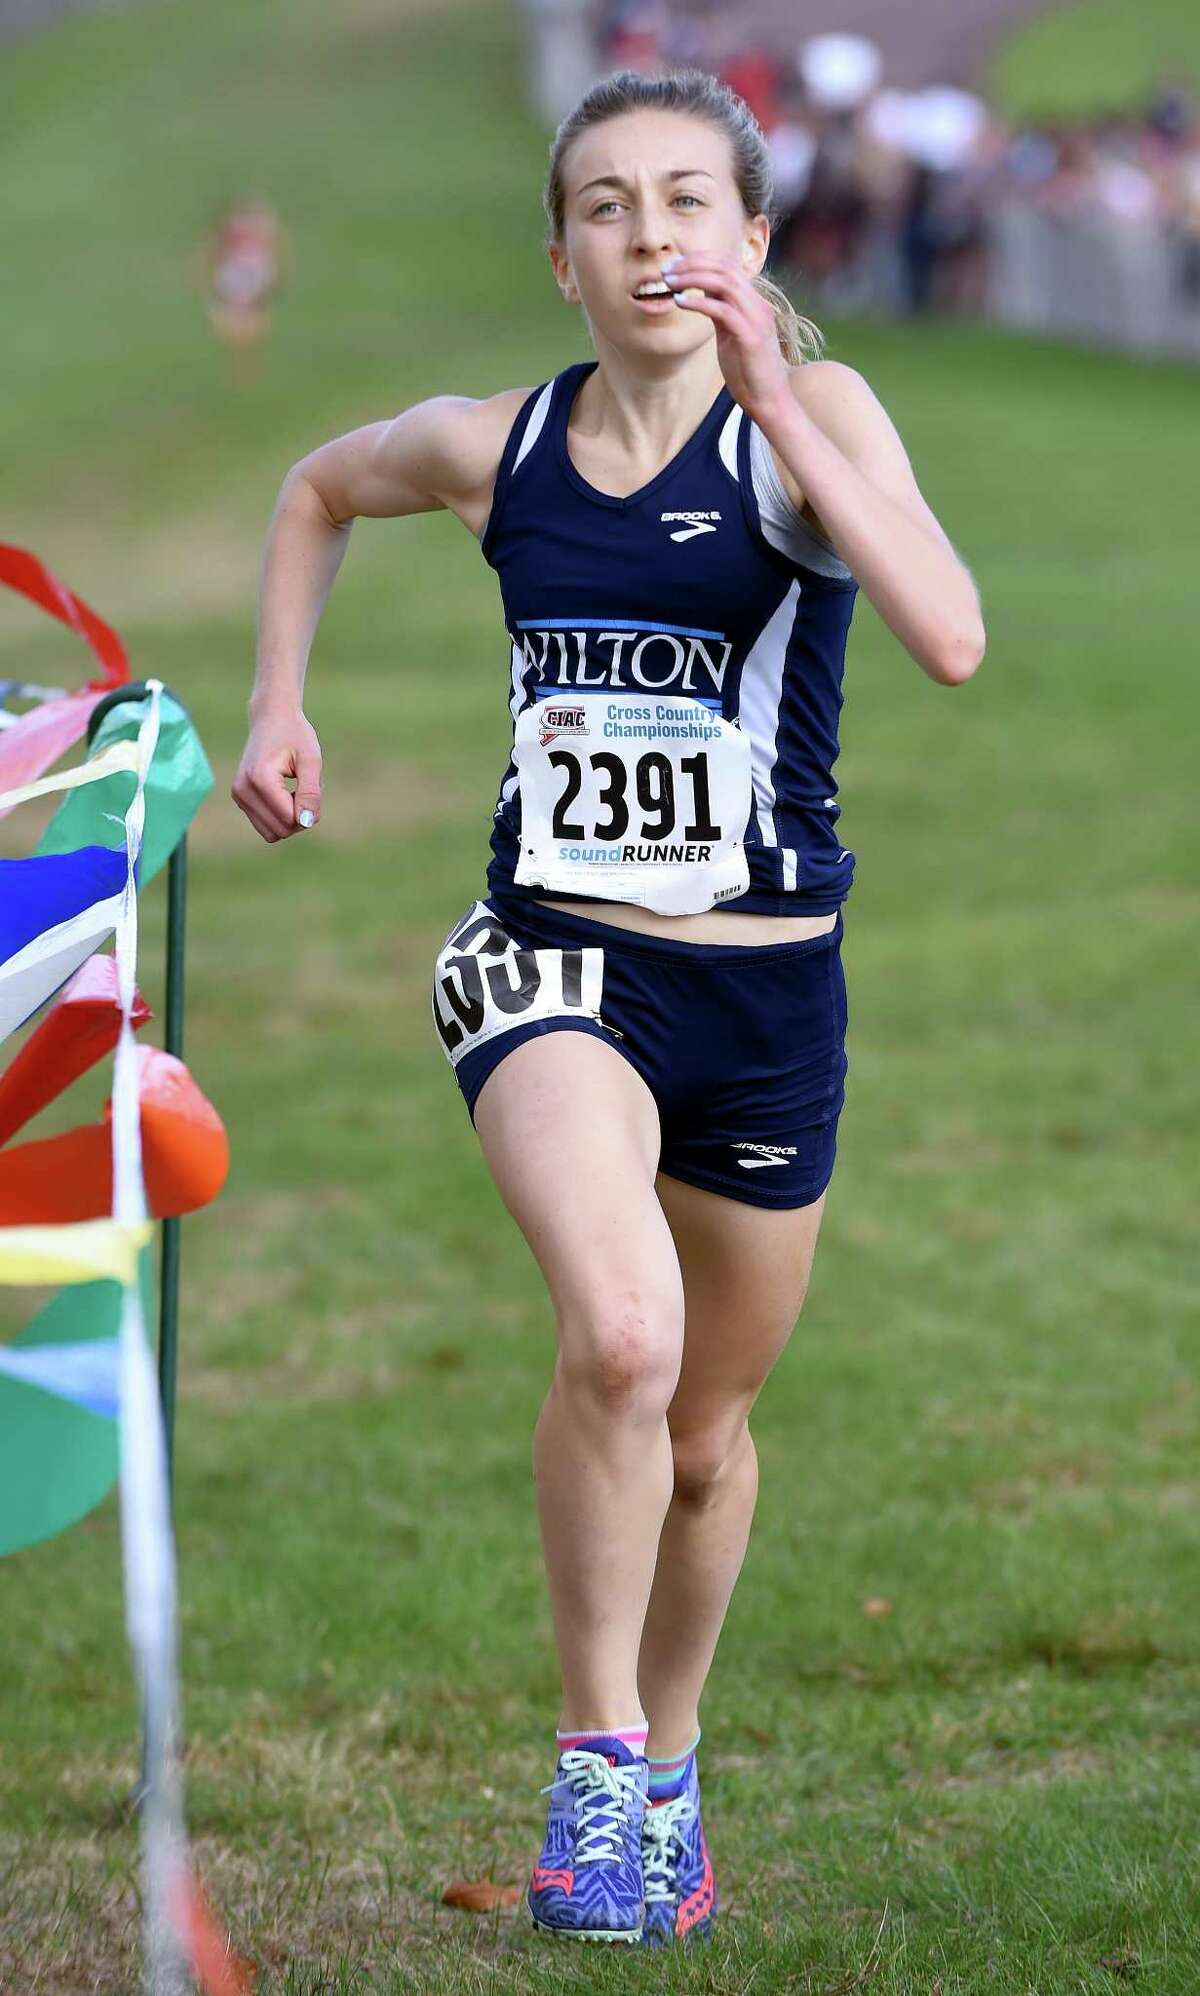 Morgan McCormick of Wilton nears the finish line placing first in the 2017 CIAC Fall Championship Girls Cross Country race in Manchester on November 3, 2017.